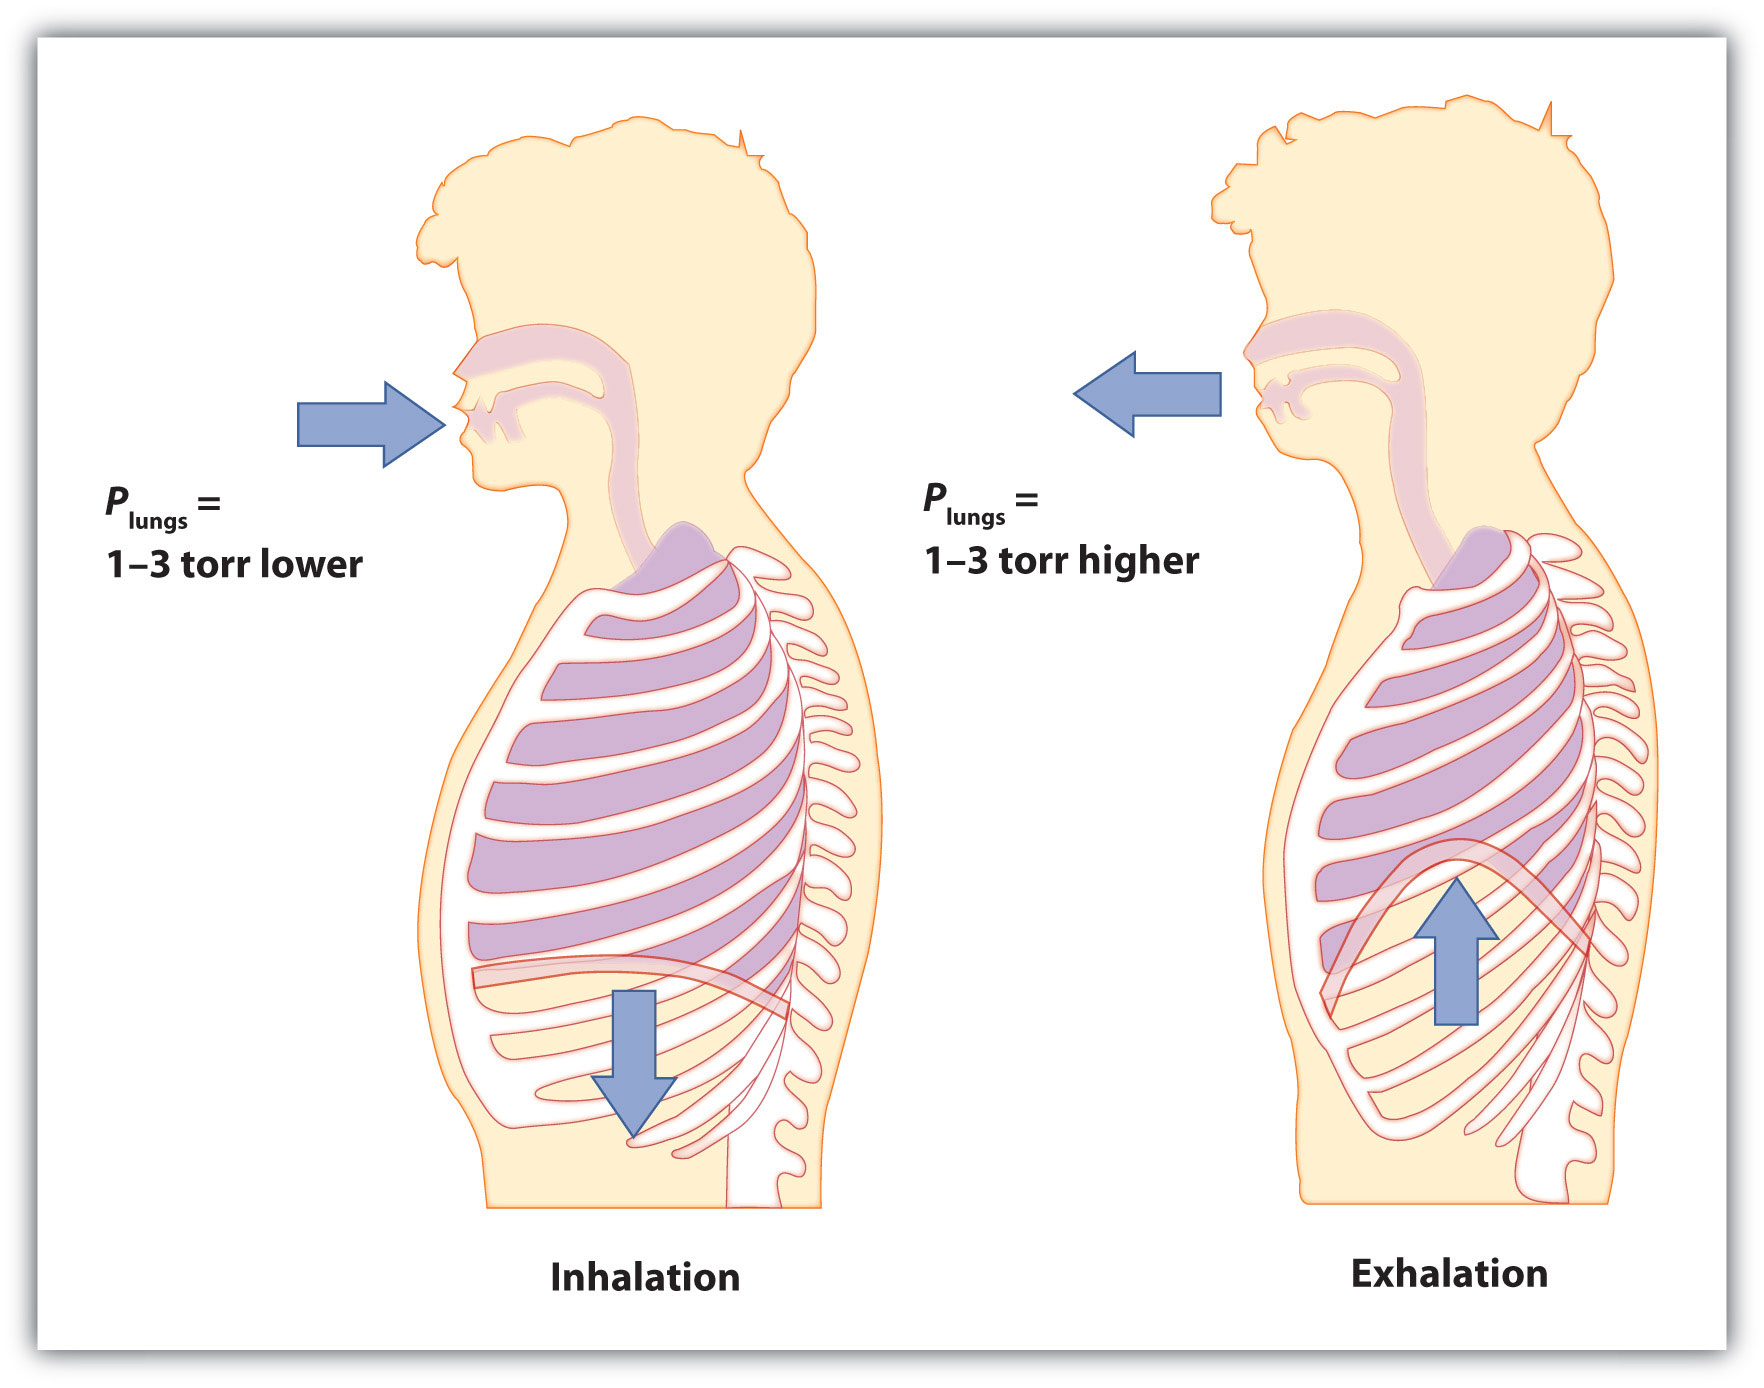 Diagram of inhalation and exhalation